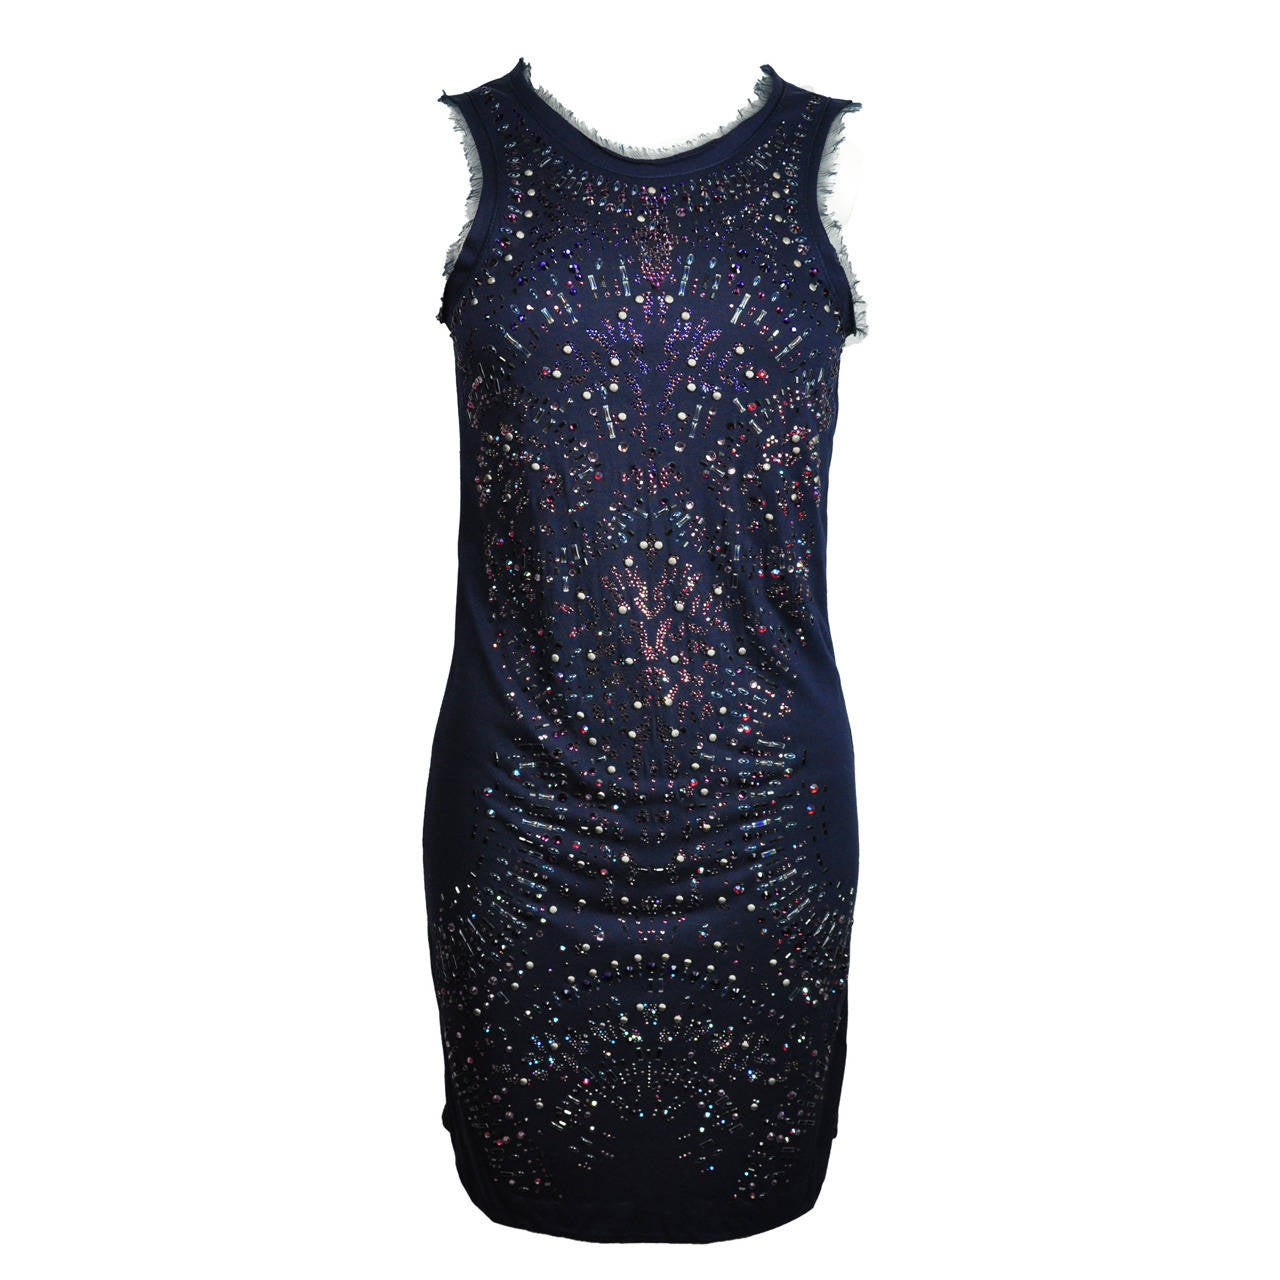 Roberto Cavalli Indigo with Multi-color Crystals Stretch Mini Dress